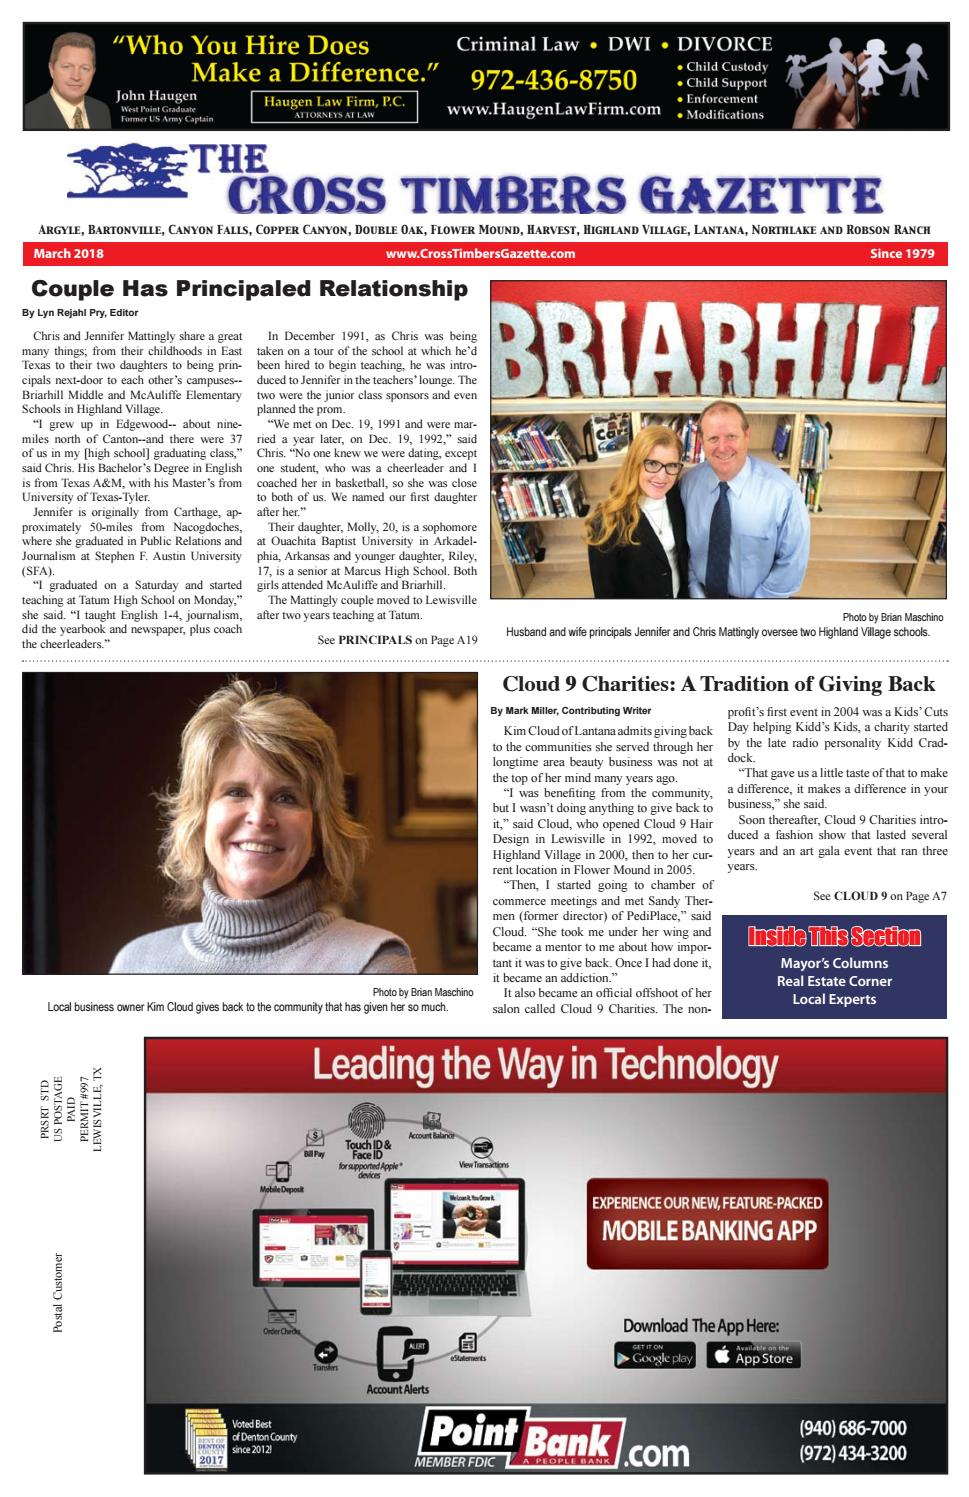 The Cross Timbers Gazette March 2018 by The Cross Timbers